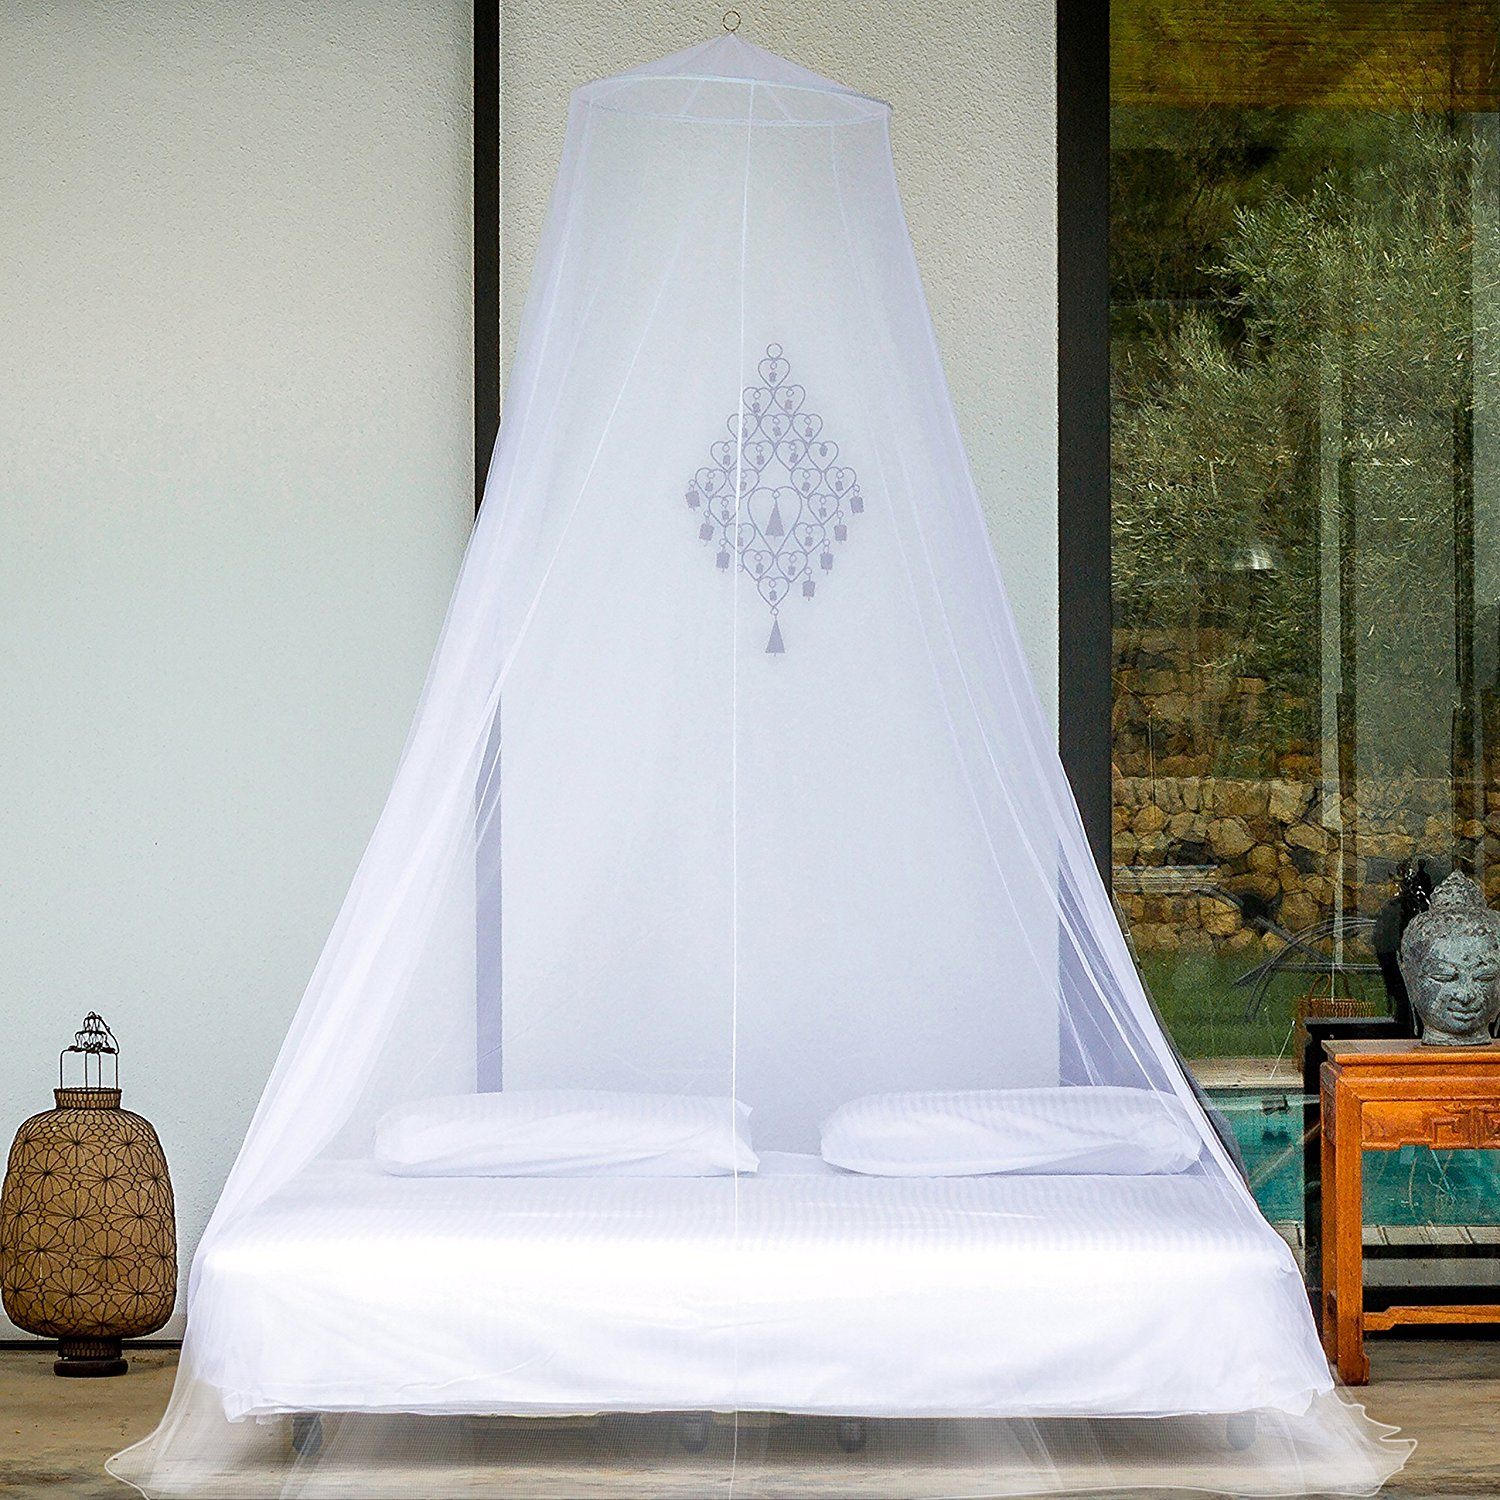 EVEN Naturals Premium Mosquito Net for Double Bed with Gift Bag & eBook